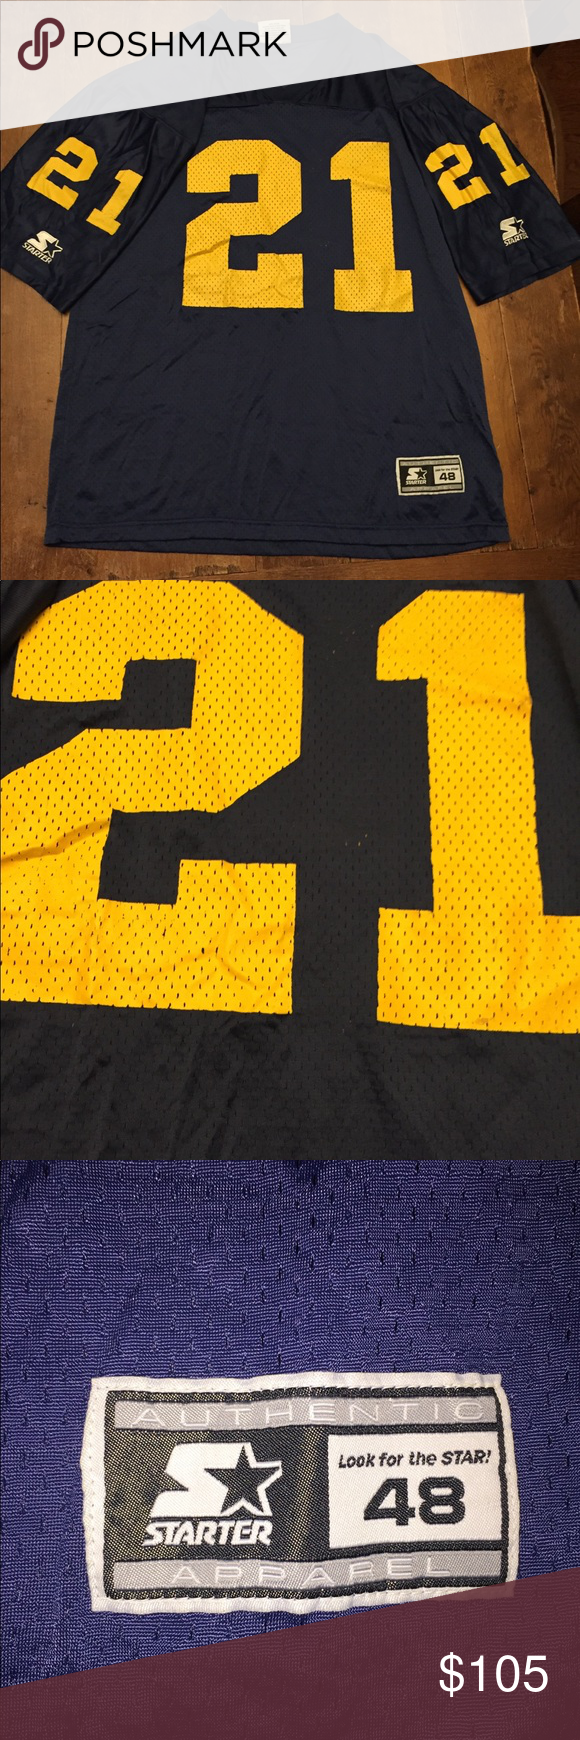 the latest 01e95 23aed Vintage Desmond Howard Michigan Football jersey Authentic ...